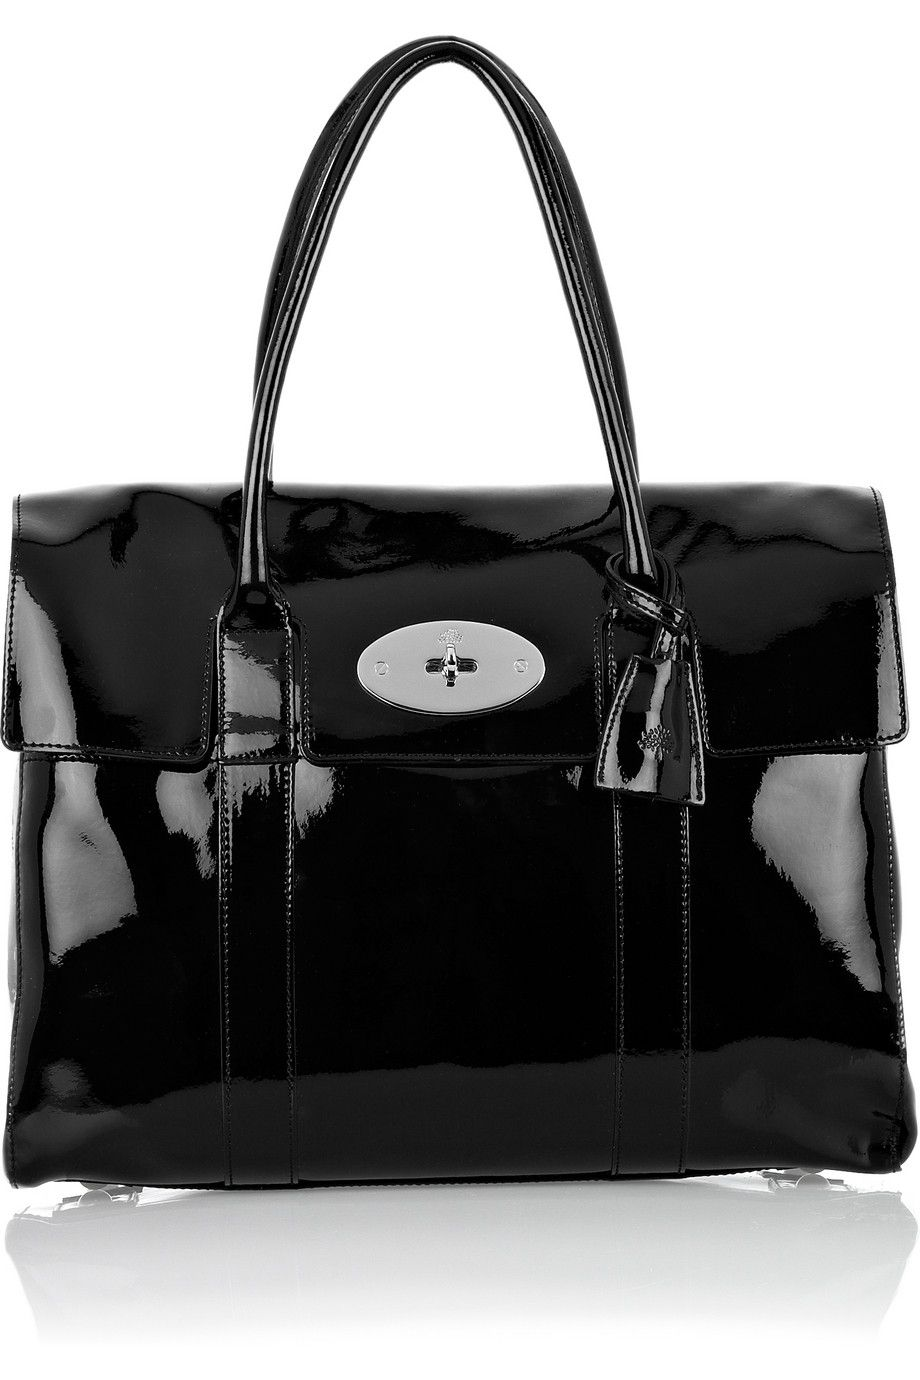 MULBERRY Bayswater patent-leather laptop bag £868 (A Bayswater ...